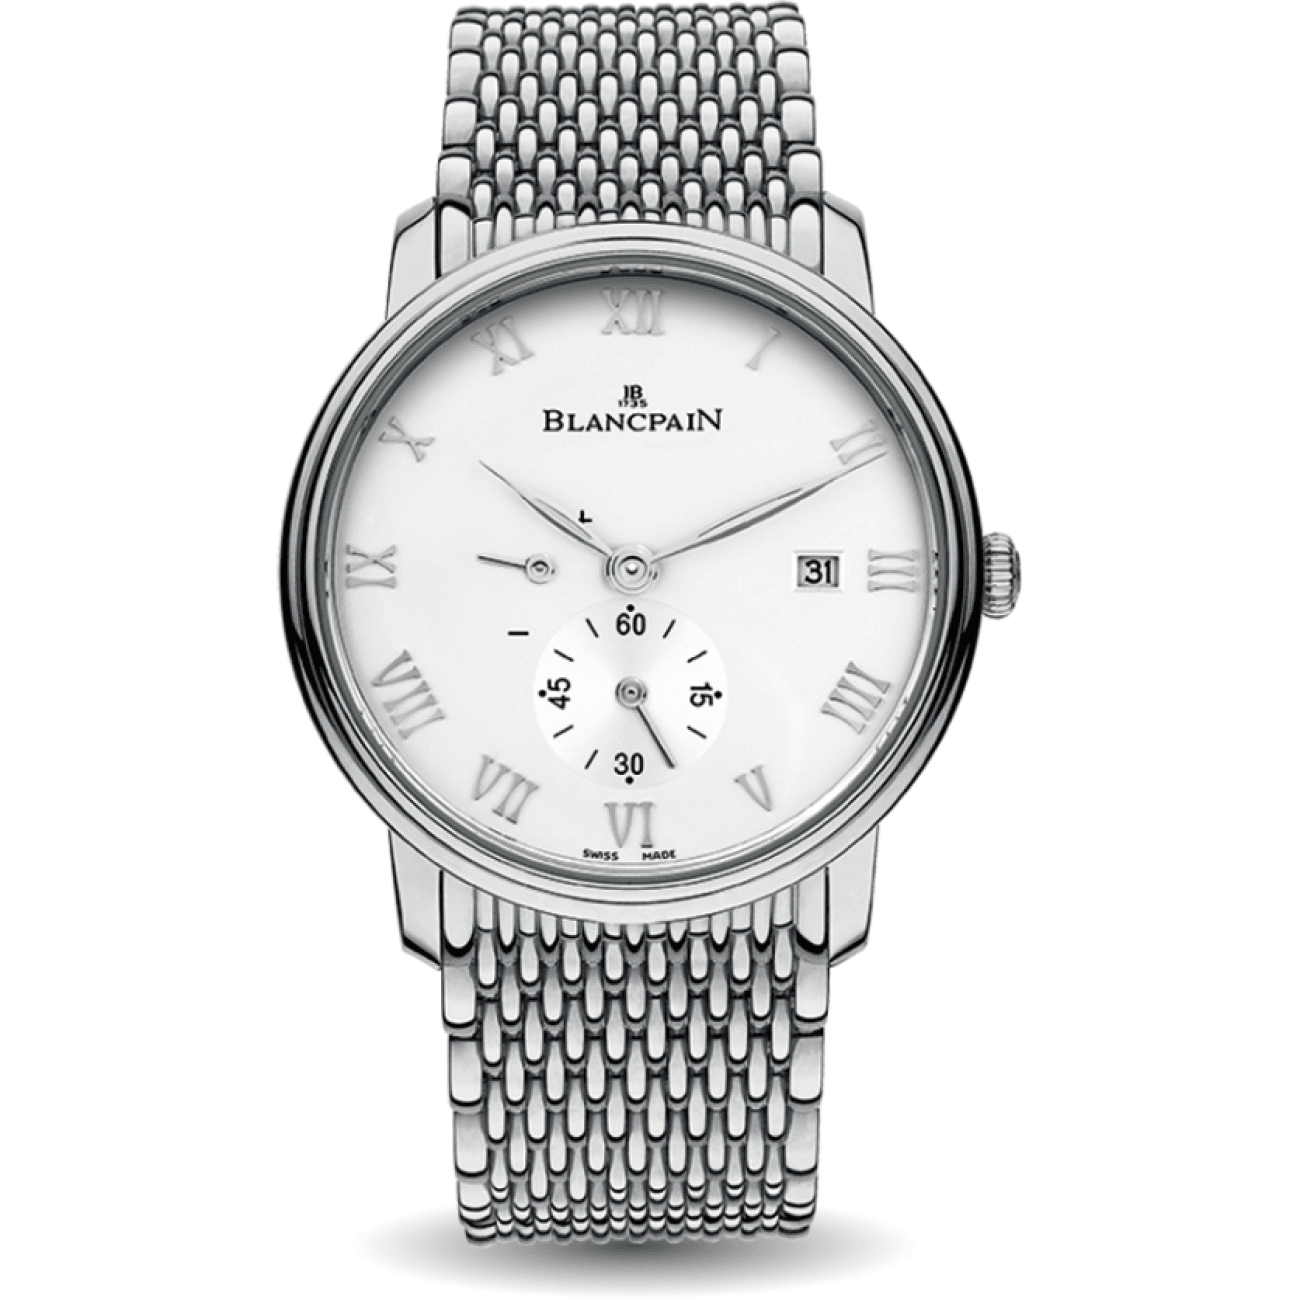 Blancpain Watches - Blancpain Villeret Ultra Slim | Manfredi Jewels